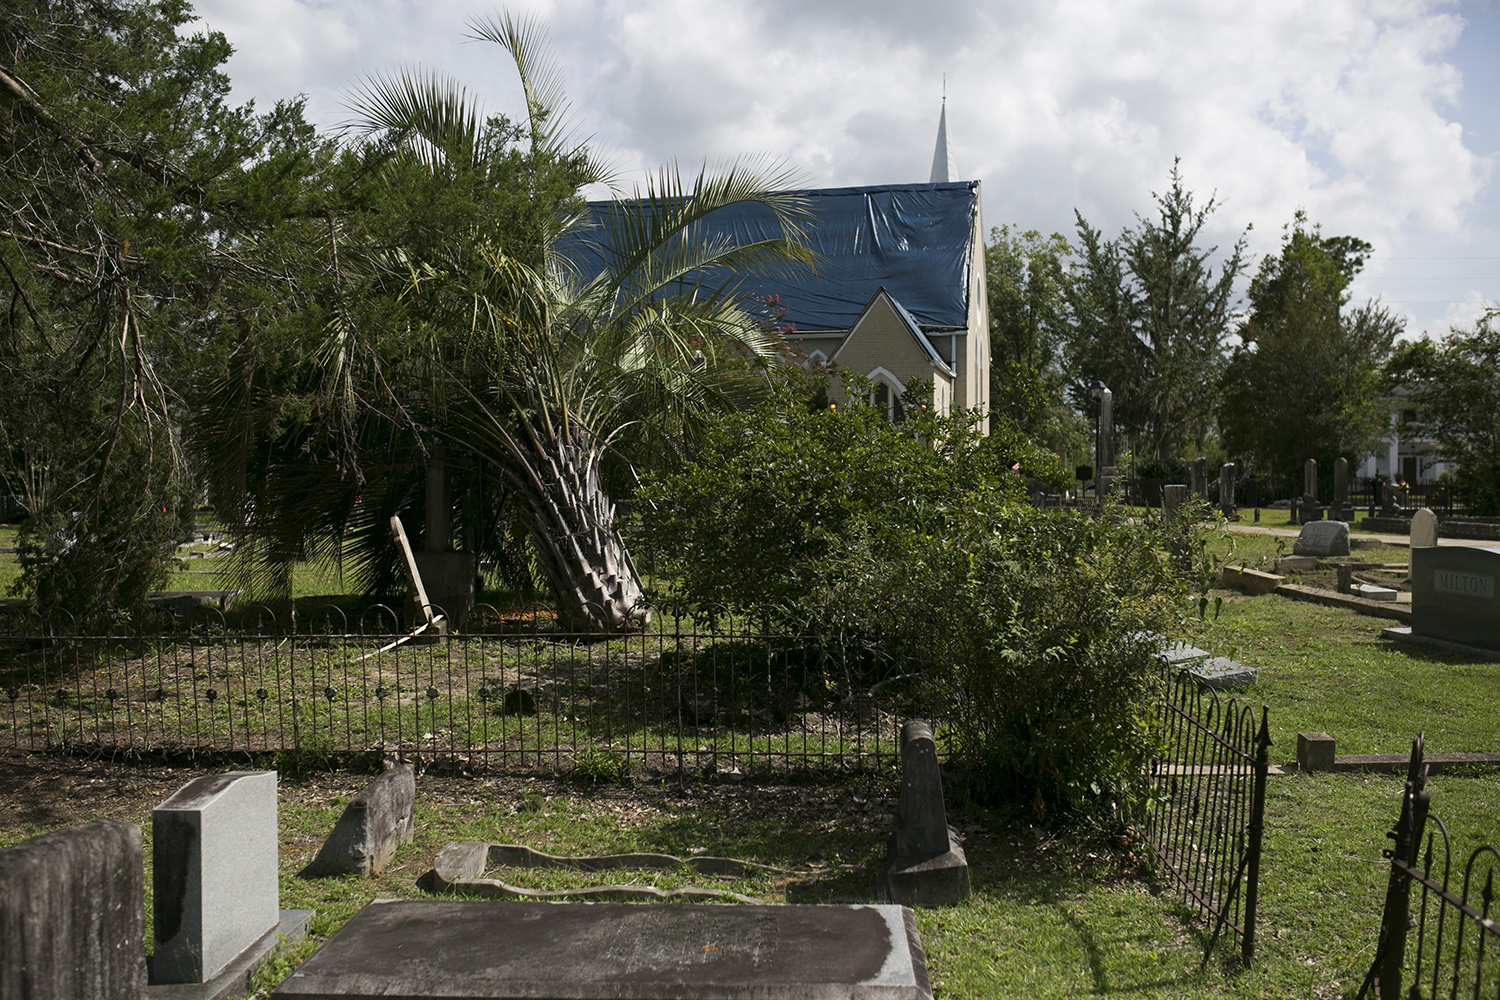 St. Luke's Episcopal Church in Marianna, Fla., on July 17, 2019. The main chapel of St. Luke's was damaged during Hurricane Michael in October 2018 and was still unusable nine months later. (Clarissa Sosin)